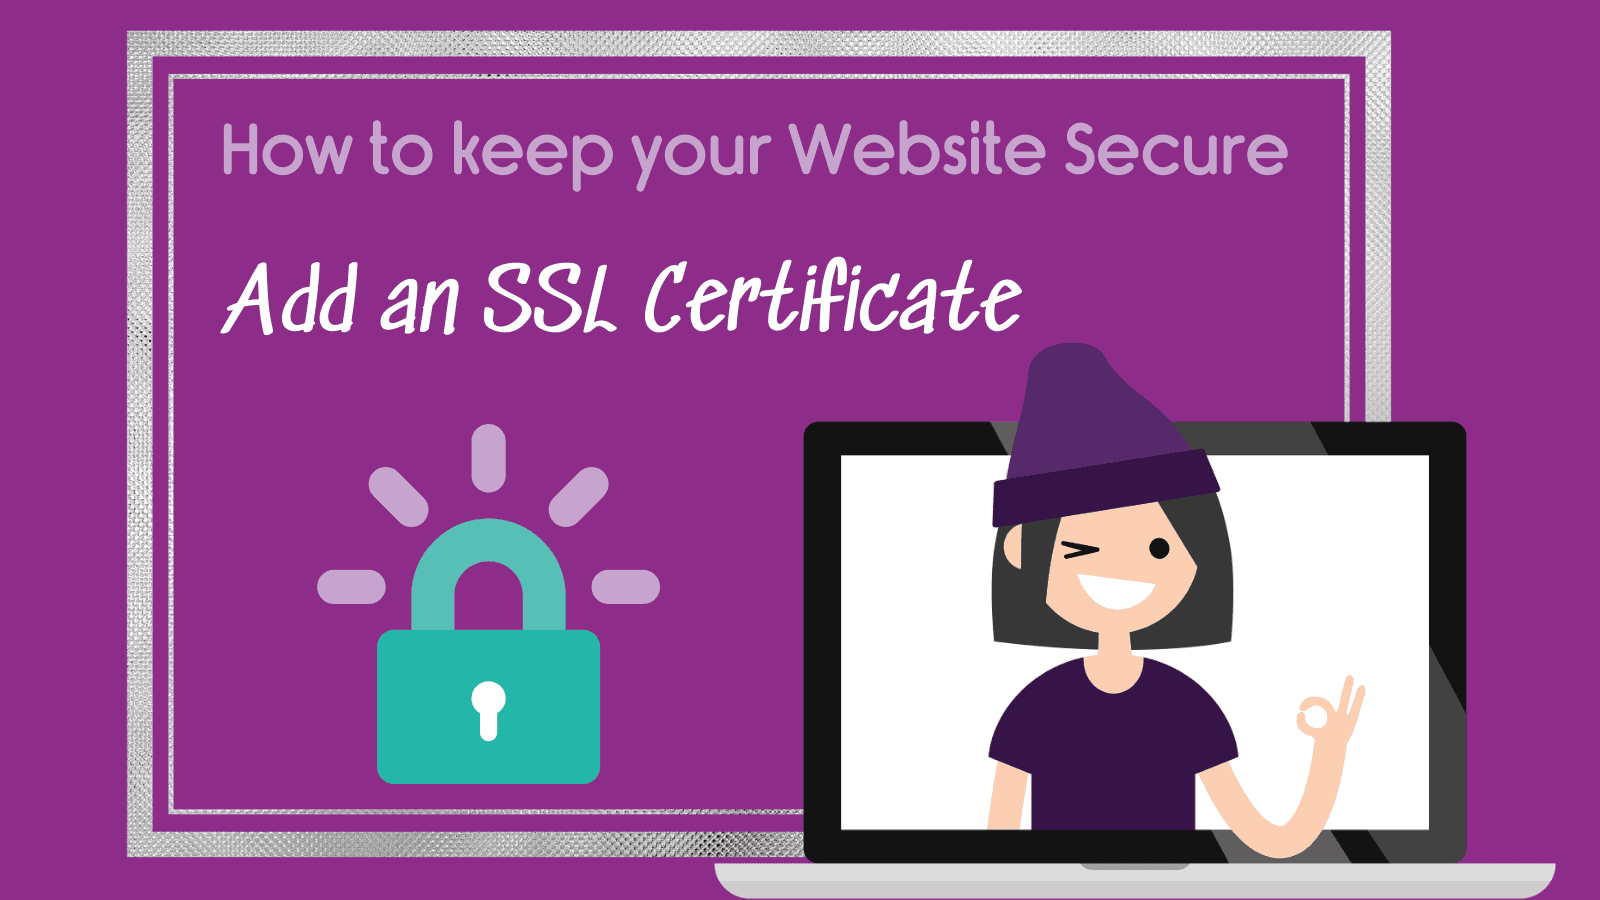 How to keep your Website Secure 2